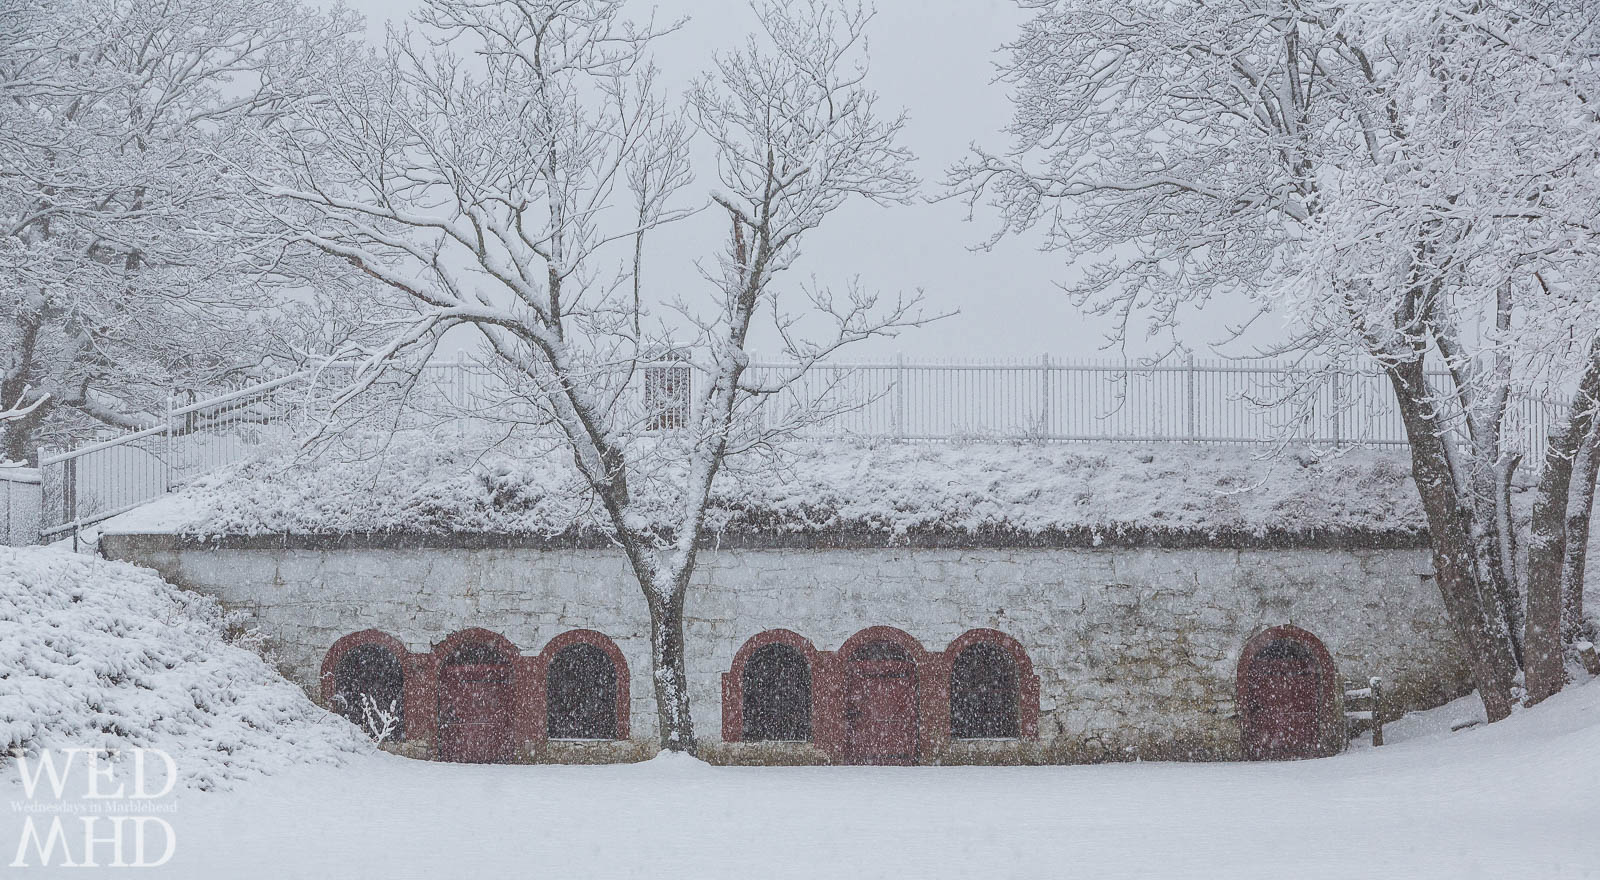 Fort Sewall is blanketed in white on a snow day in Marblehead captured when the arches were red and the tree still stood